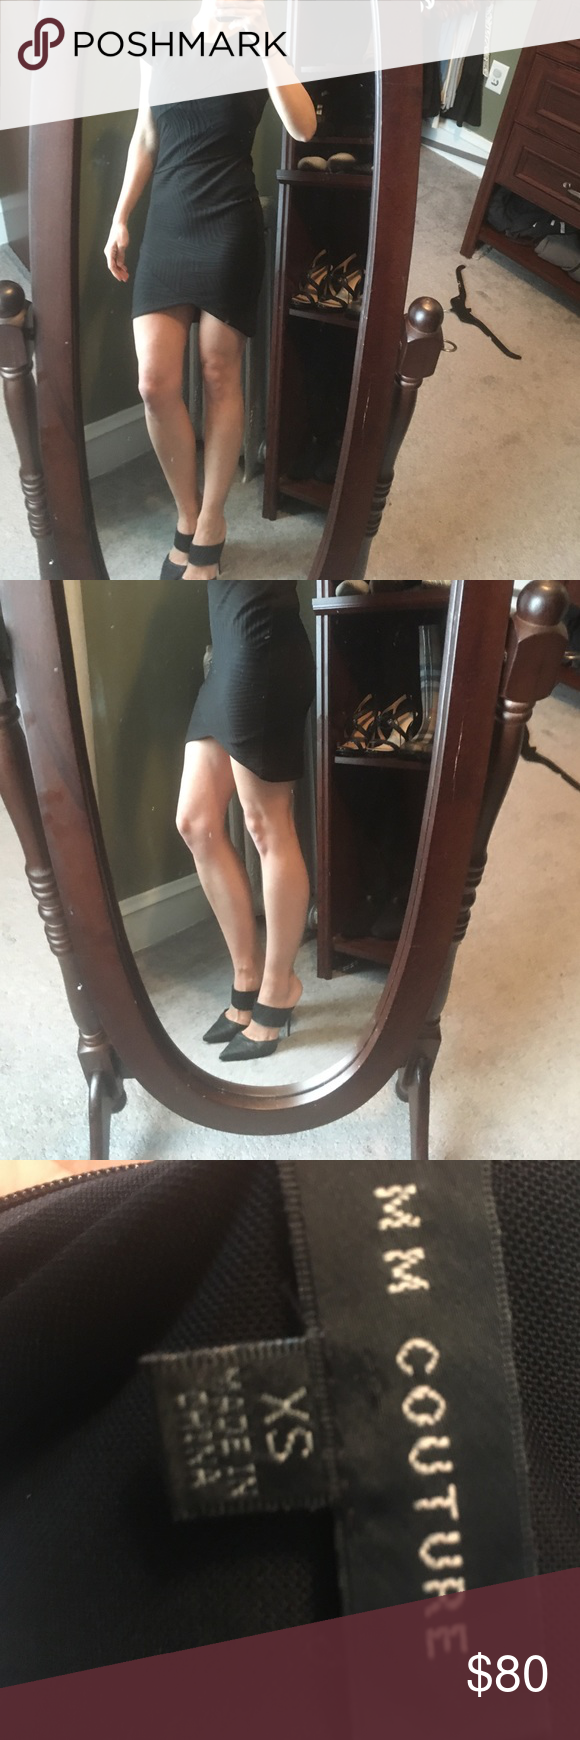 MM couture Black dress Only worn once. Love this dress but it's a little short for my taste so must find a new home. High in the front and longer in the back. Size xs. Thick material. Beautiful detail. MM Couture Dresses